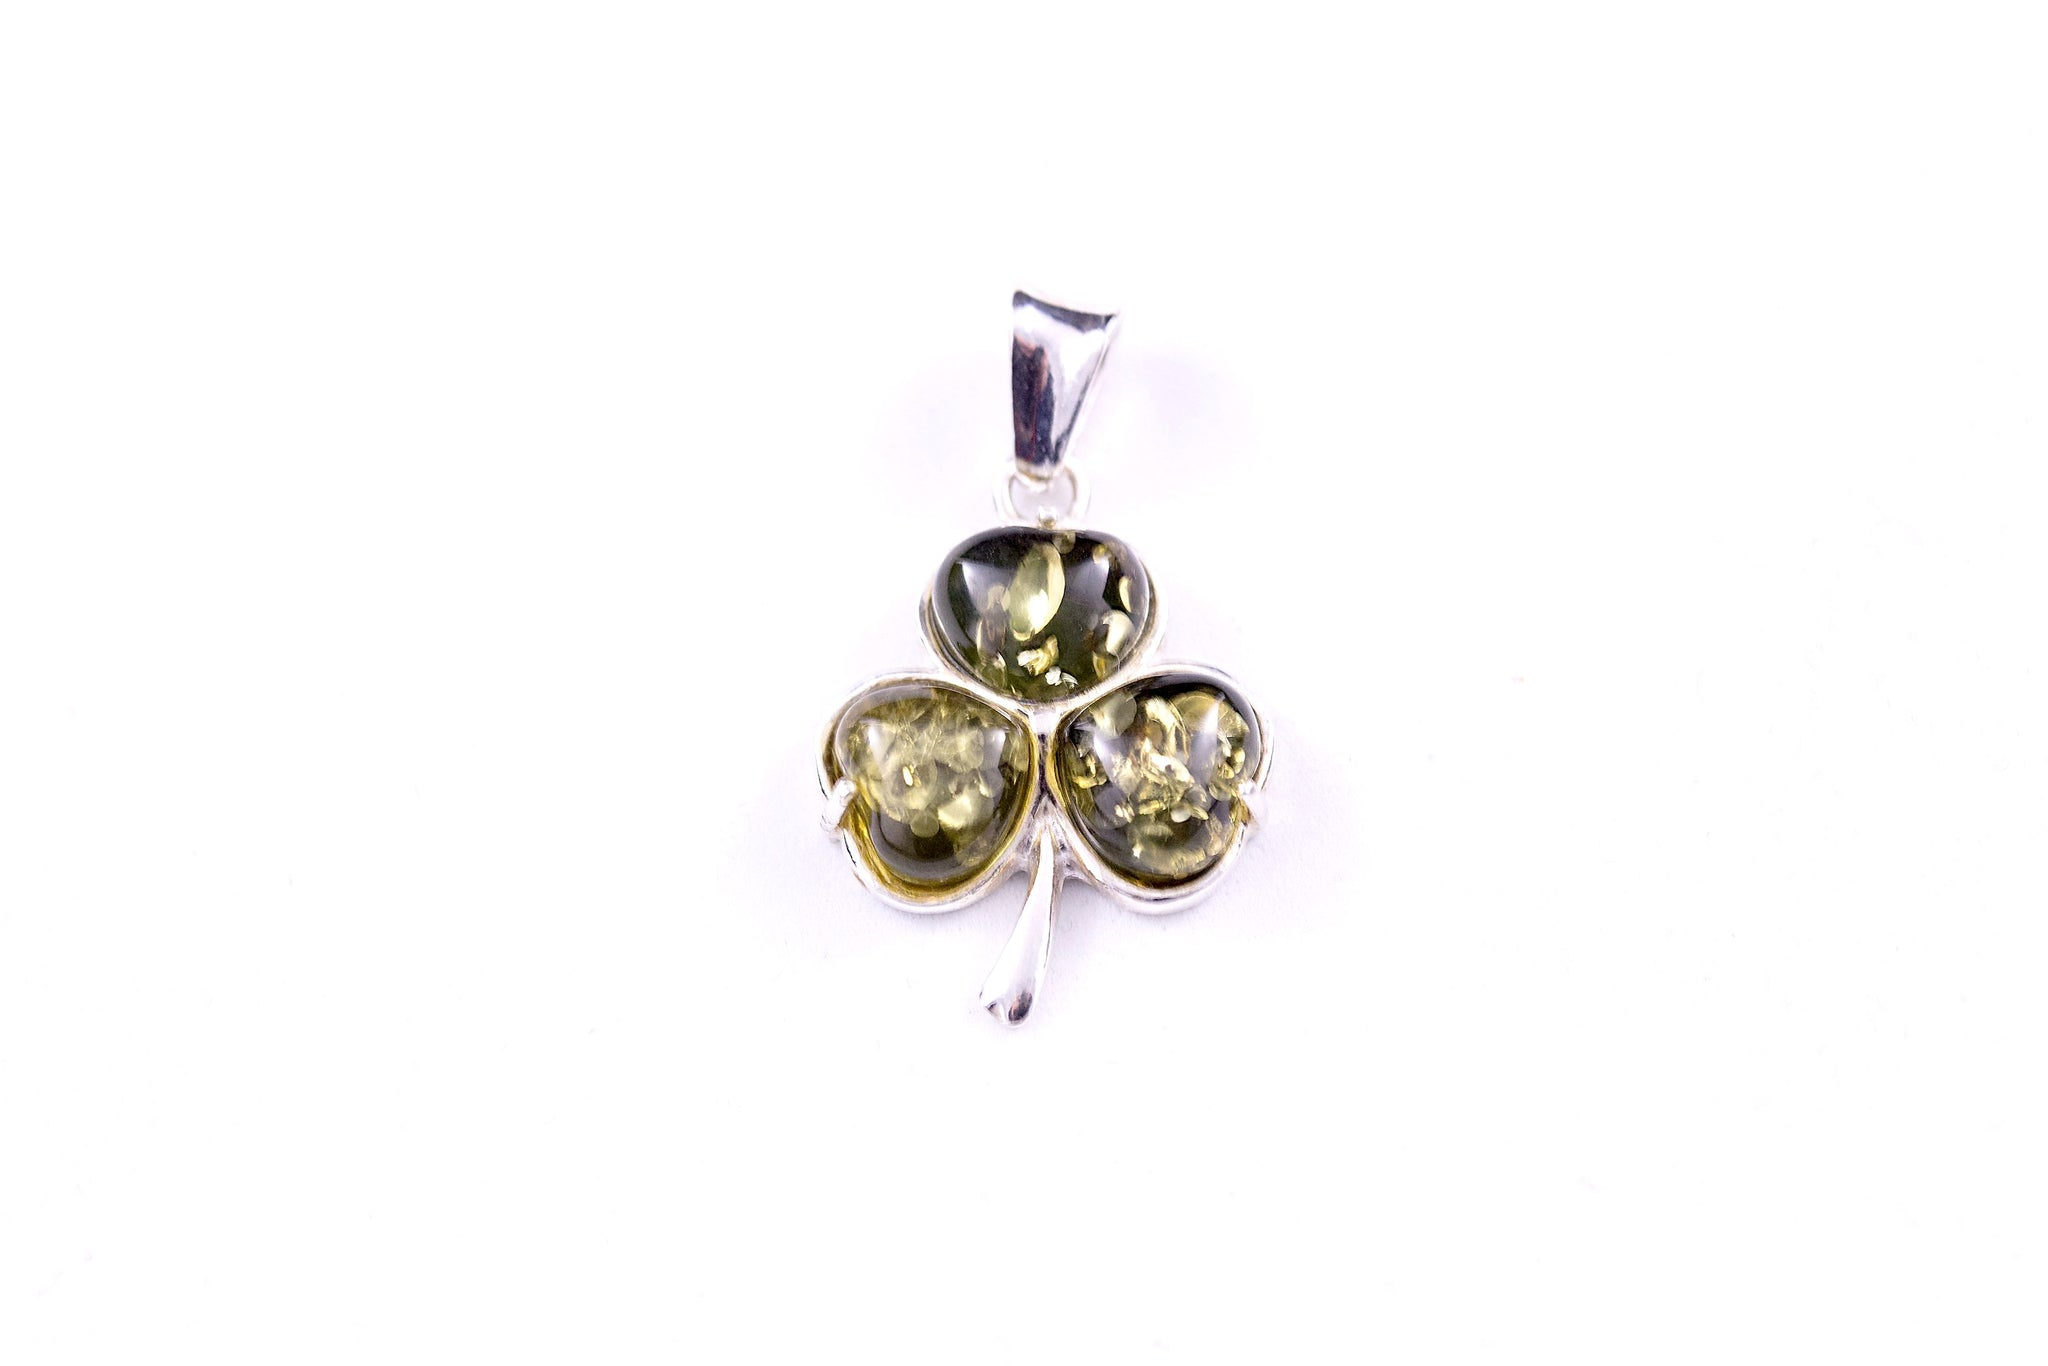 cda6111e2a570 Green Amber and Sterling Silver Clover Pendant